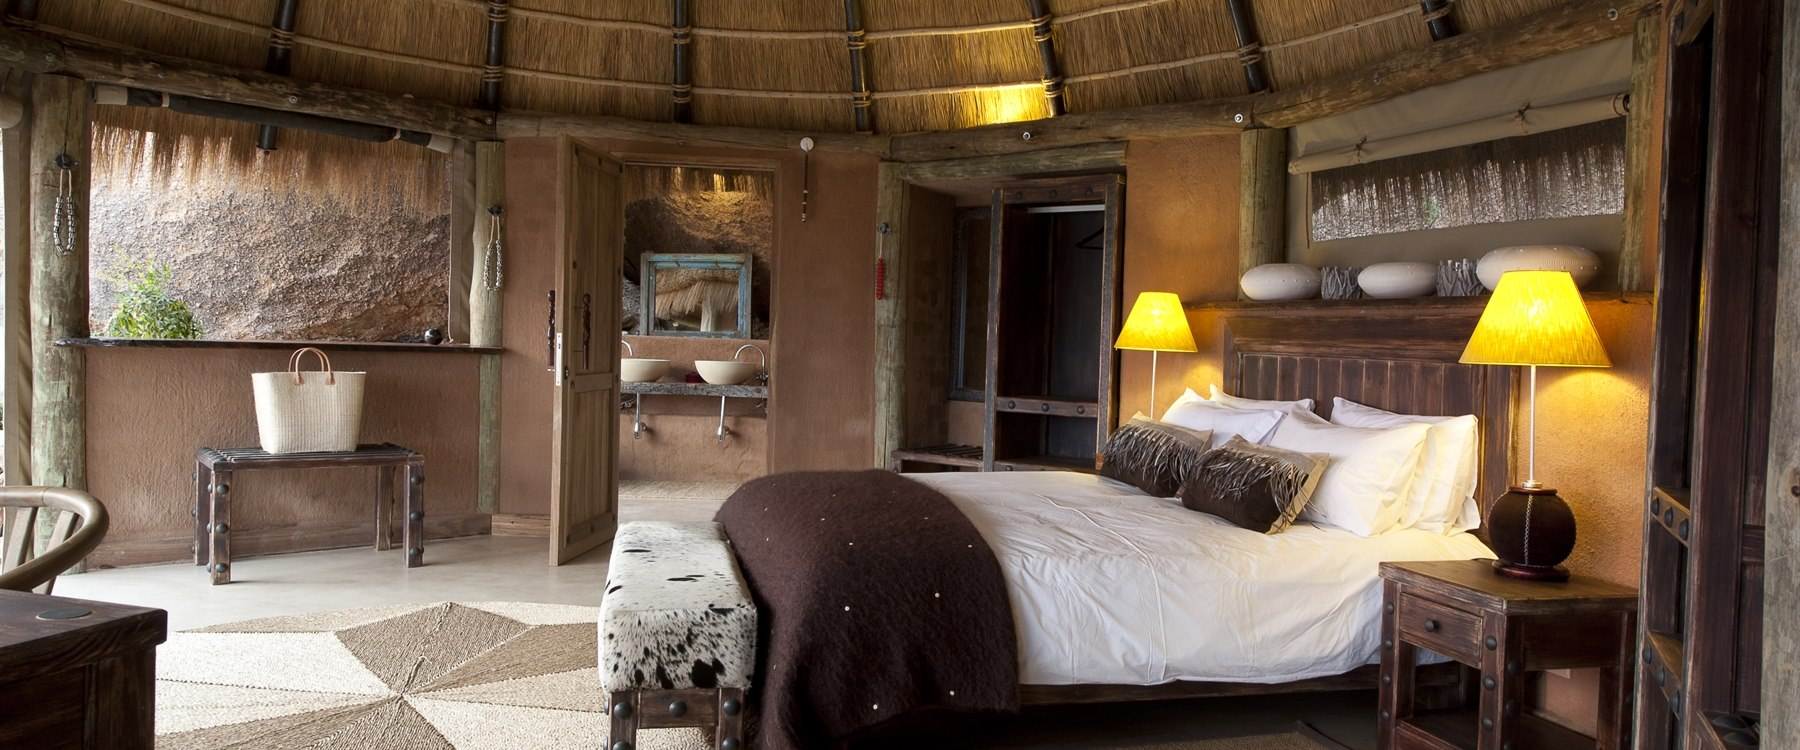 Suite interior at Camp Kipwe